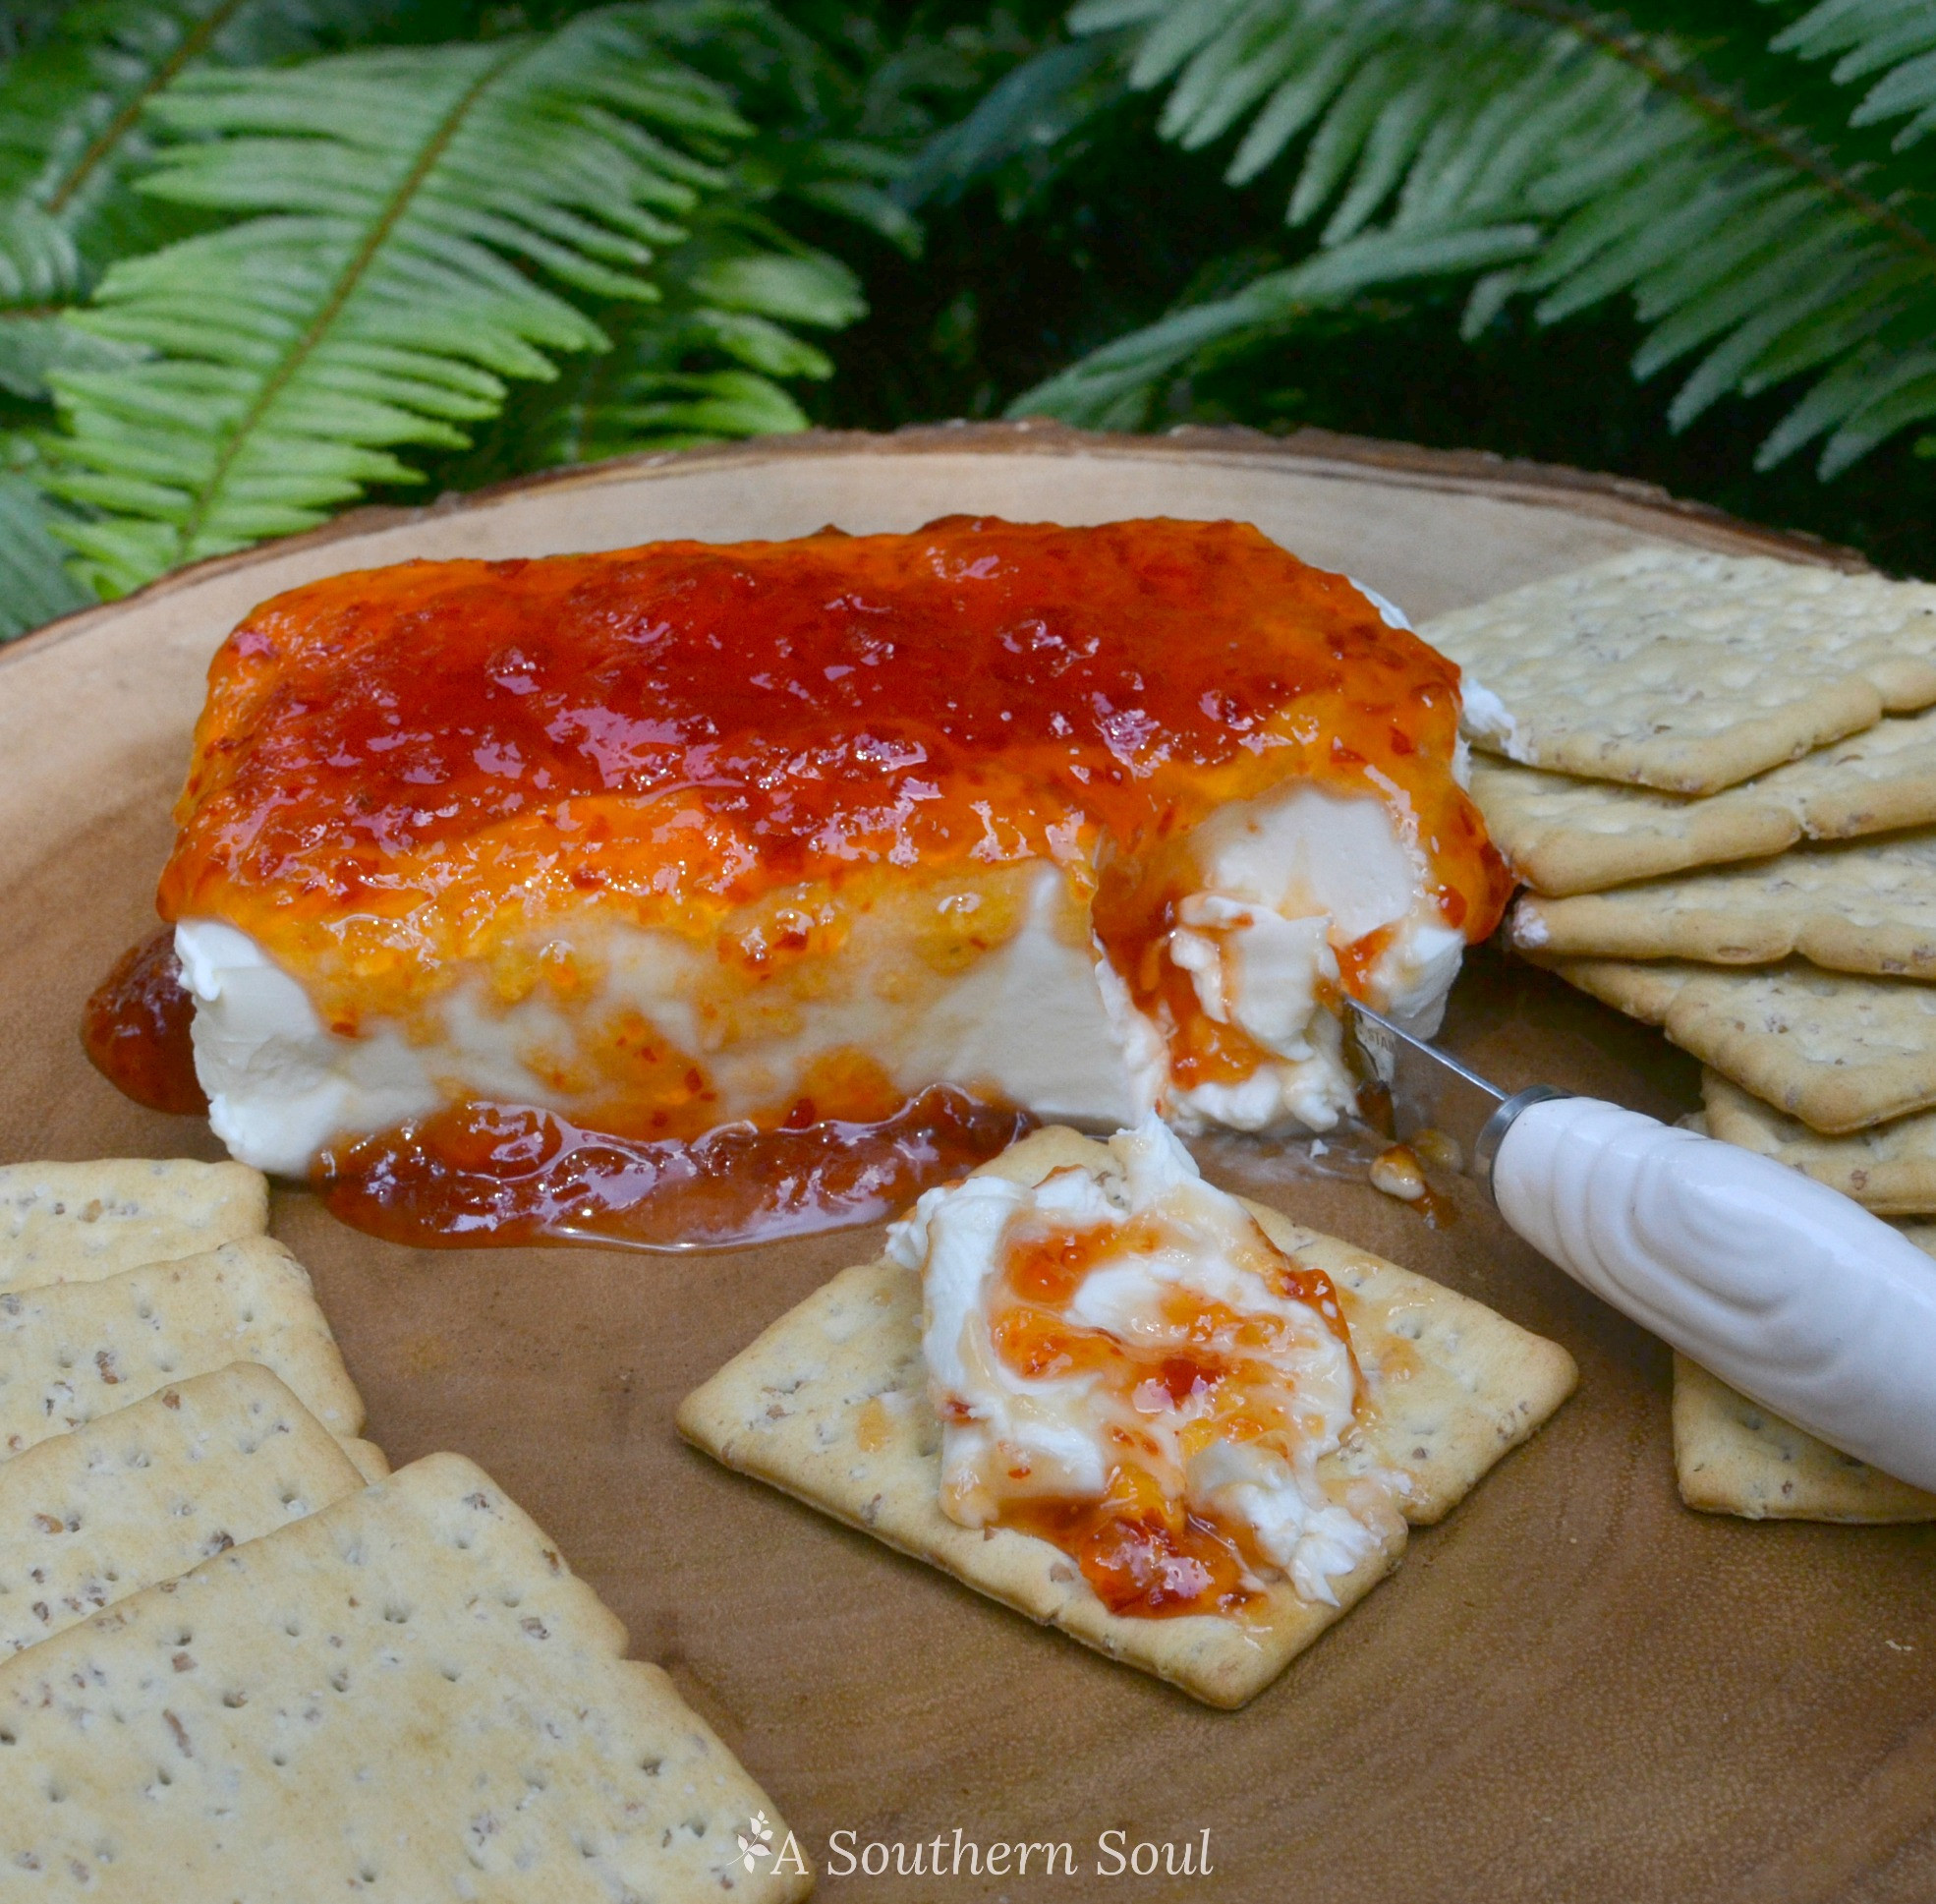 Cream Cheese Recipes Appetizers  Pepper Jelly & Cream Cheese Appetizer A Southern Soul